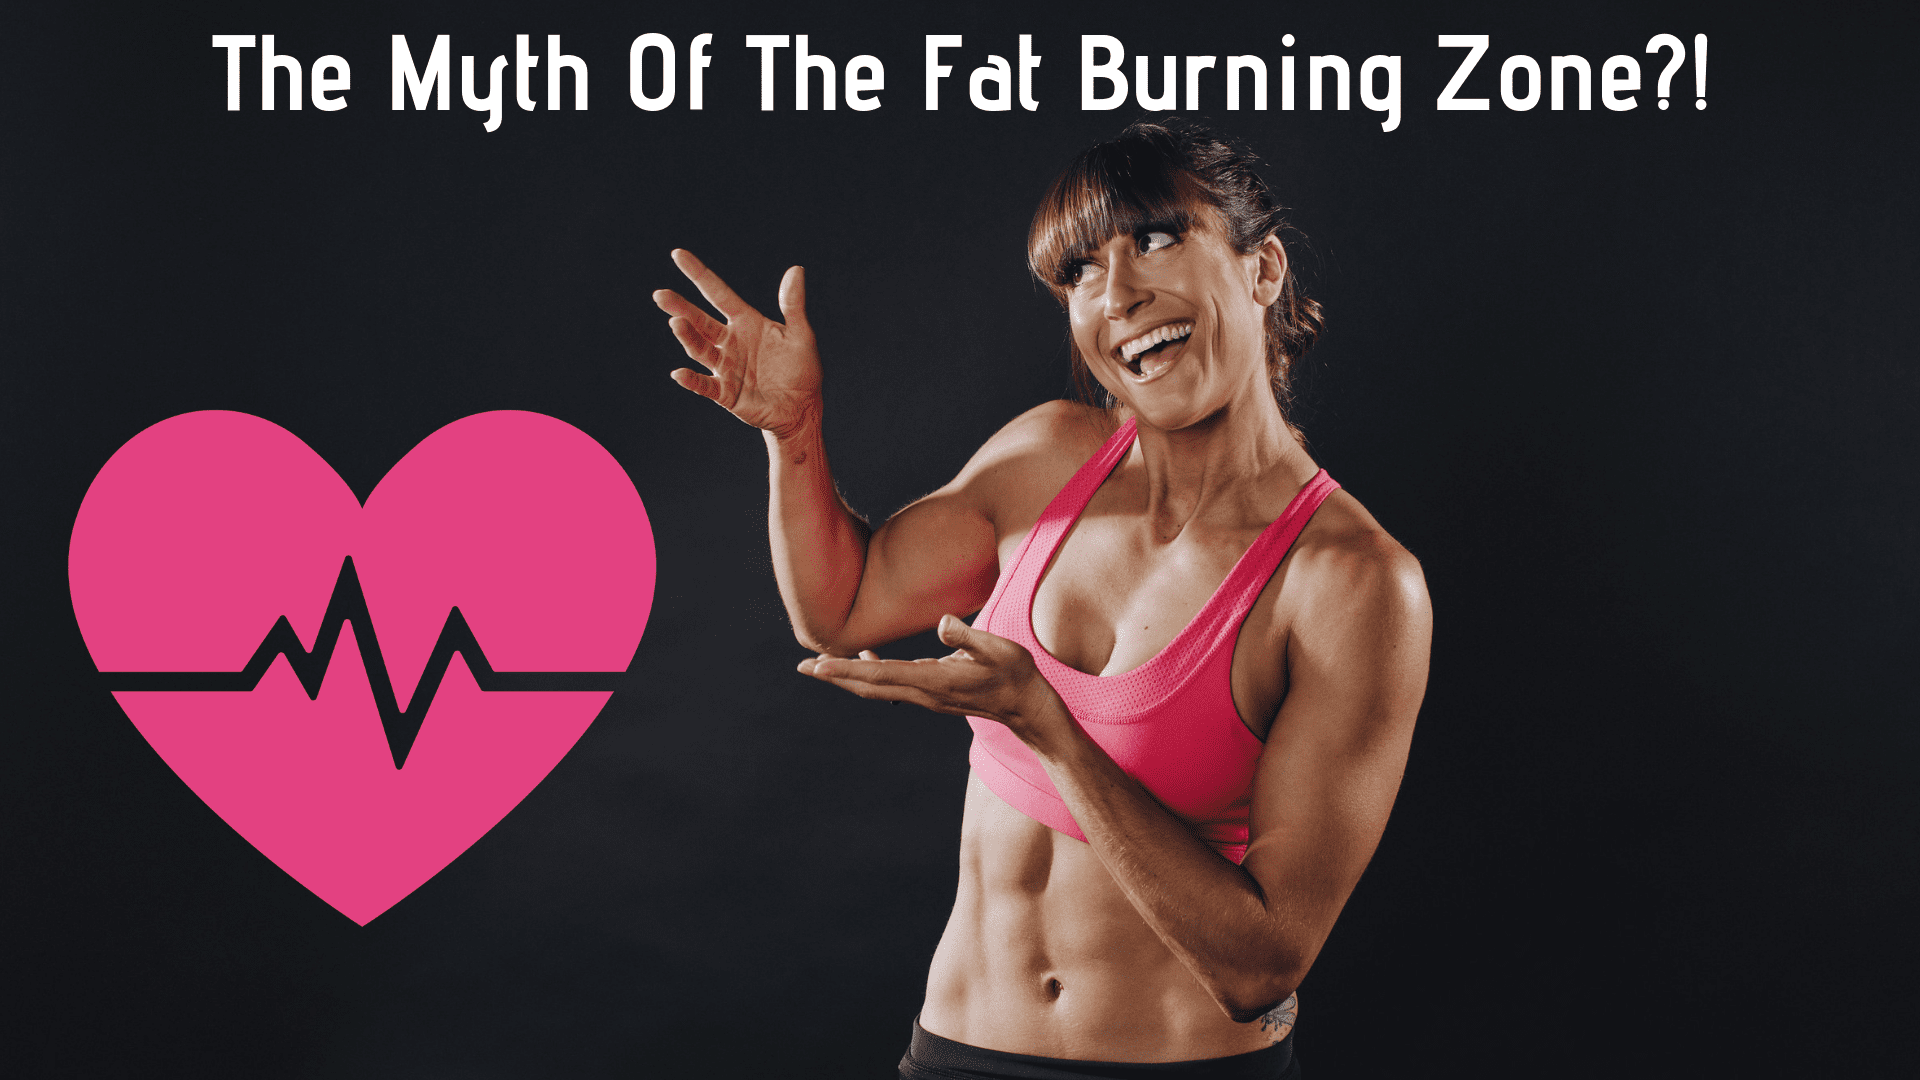 The Myth Of The Fat Burning Zone